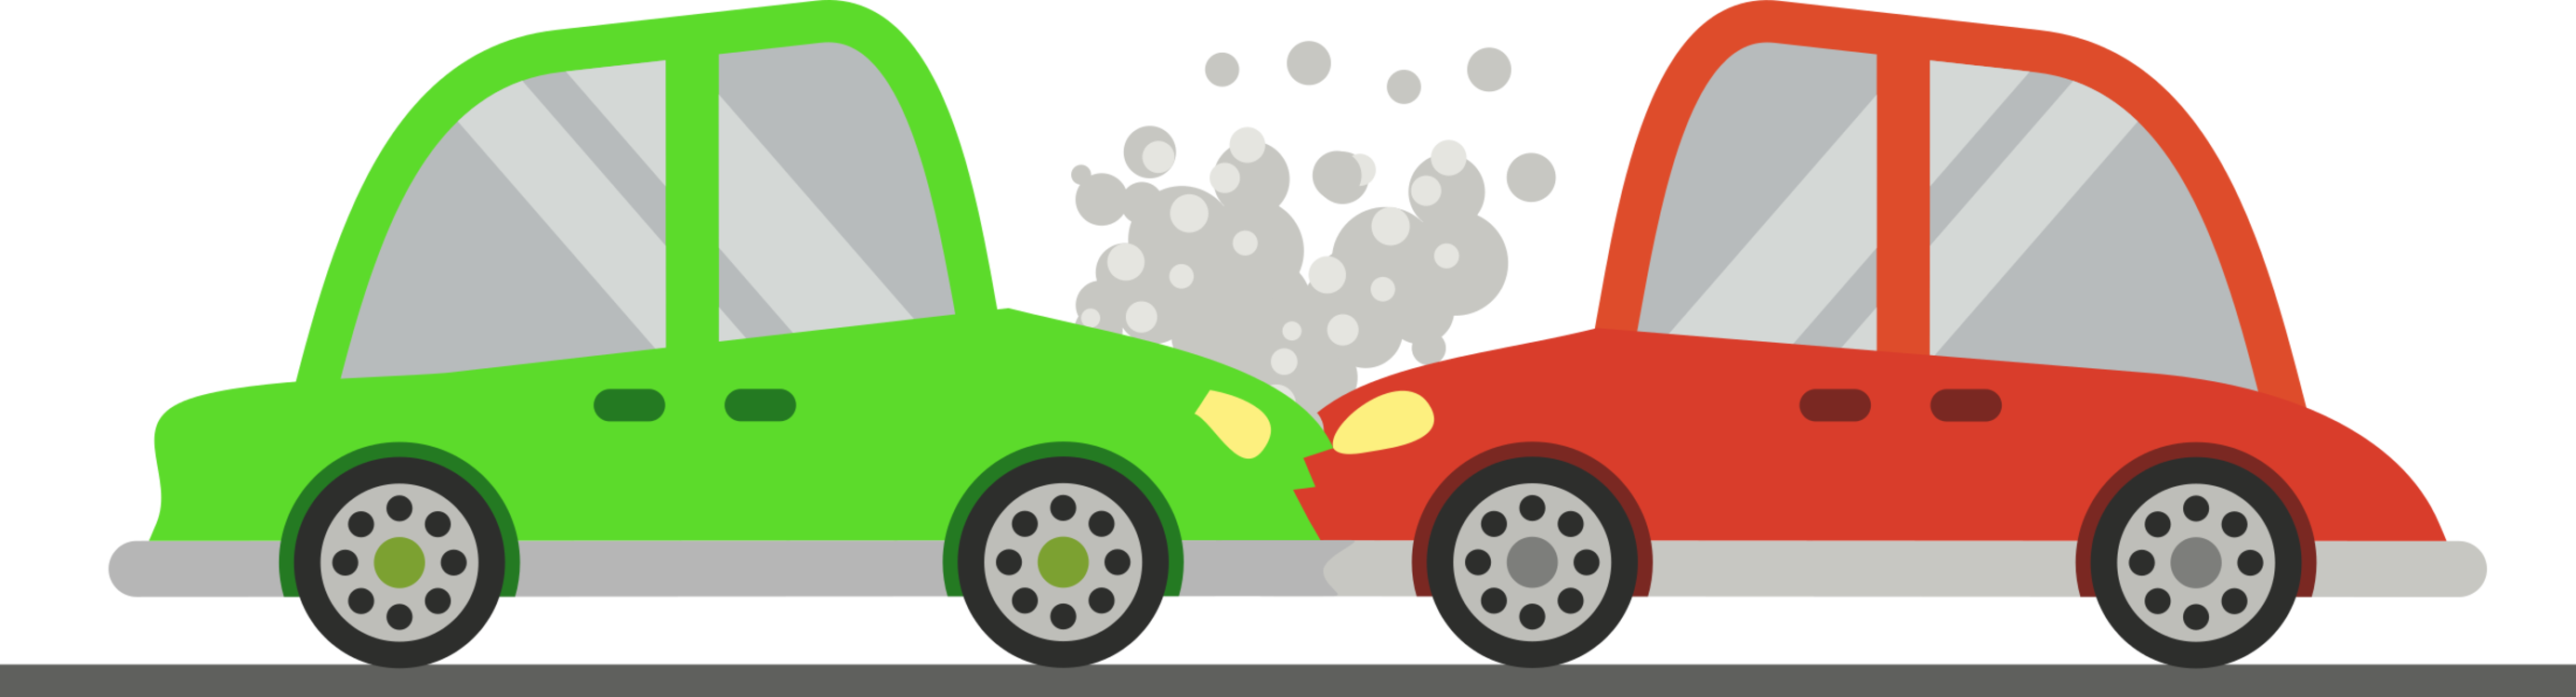 Driving clipart small car. Compact traffic collision vehicle